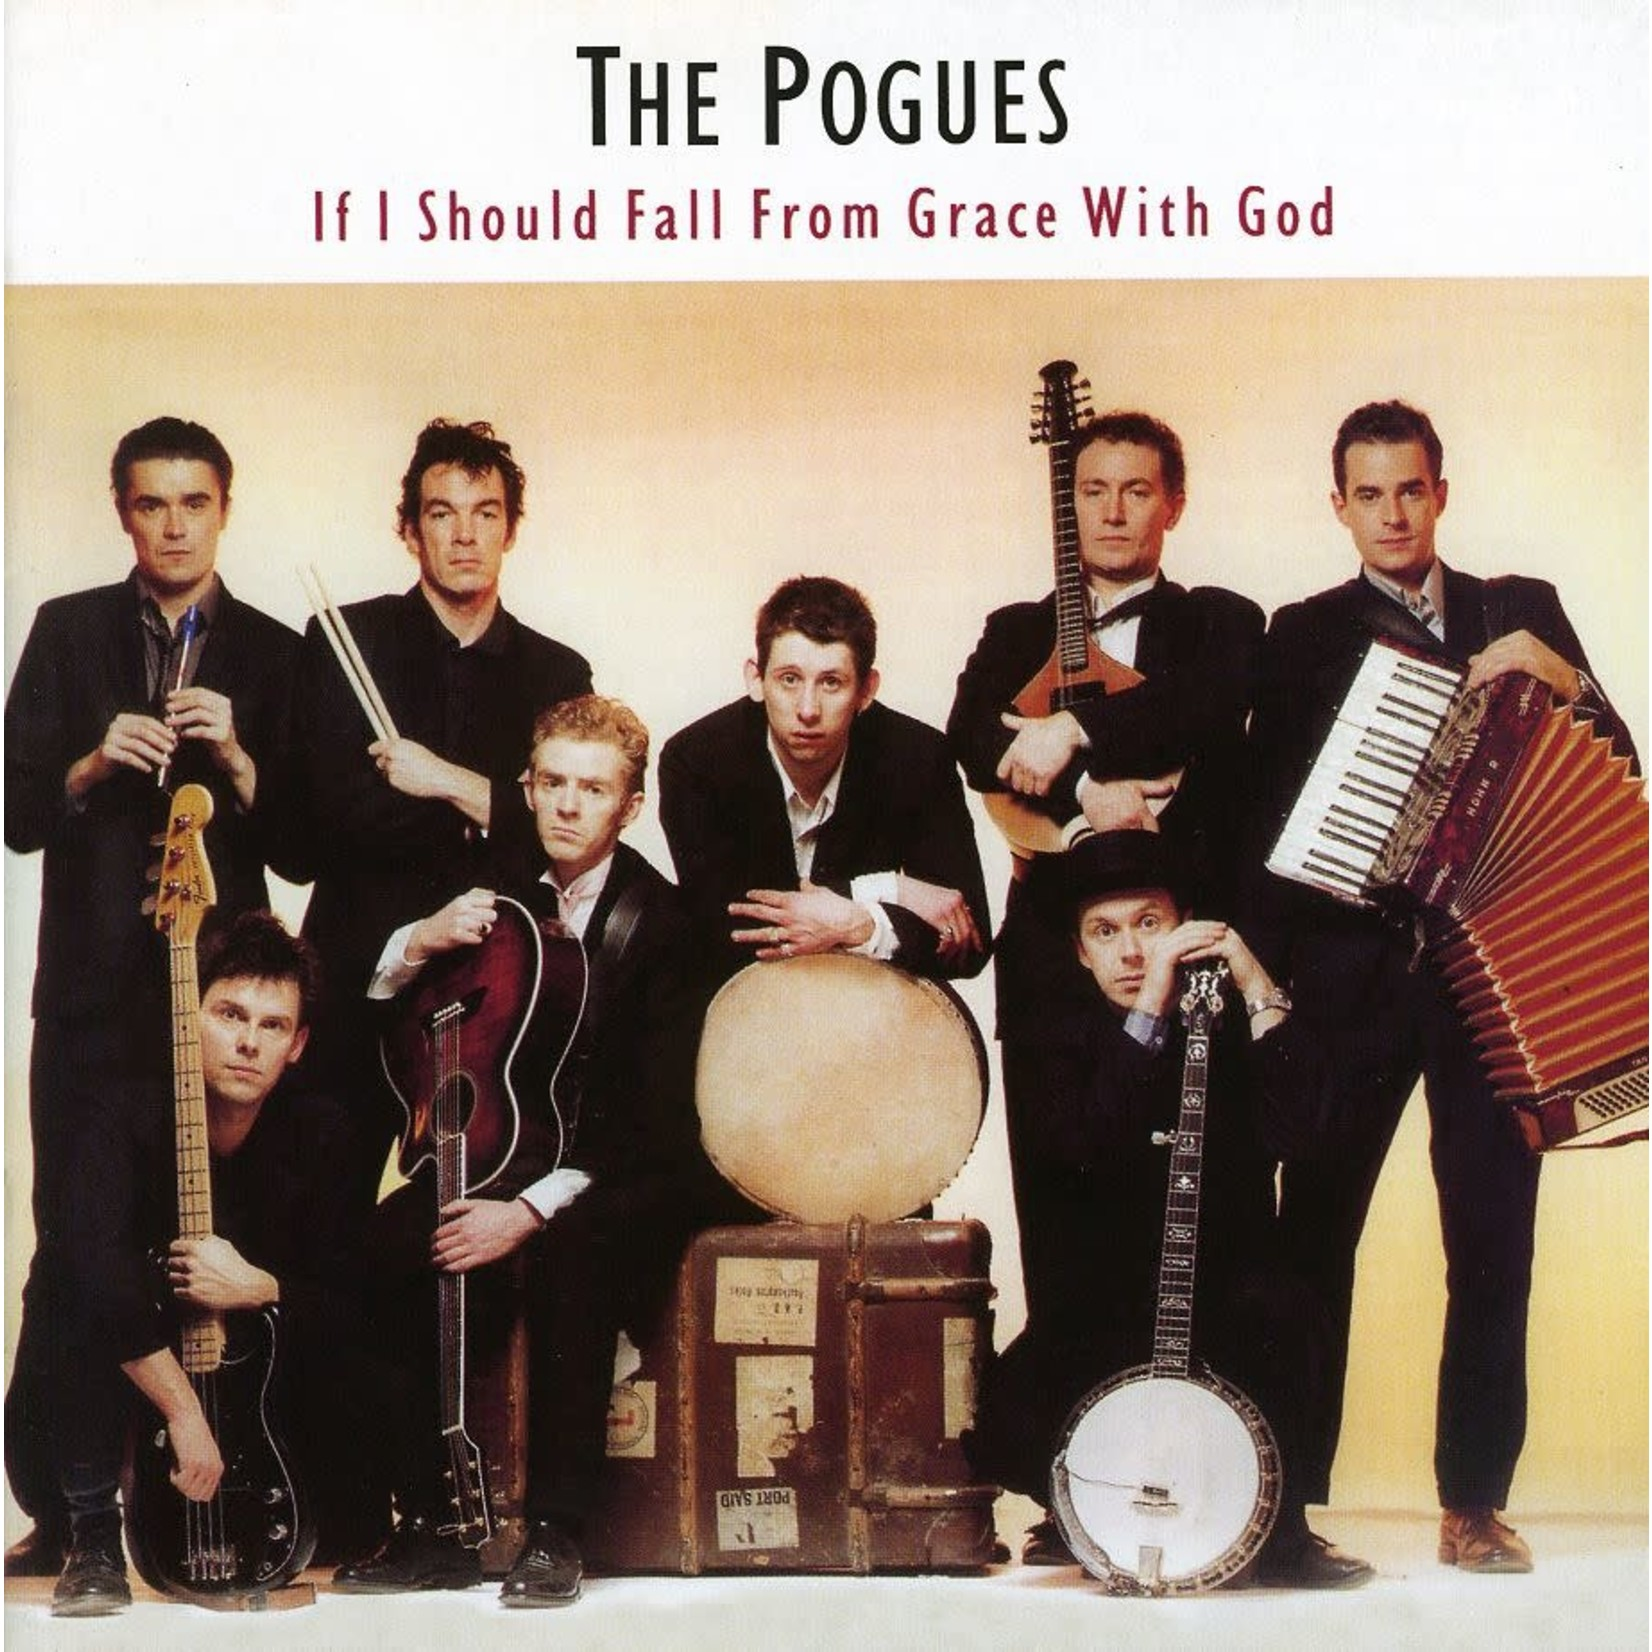 [Vintage] Pogues: If I Should Fall From Grace With God